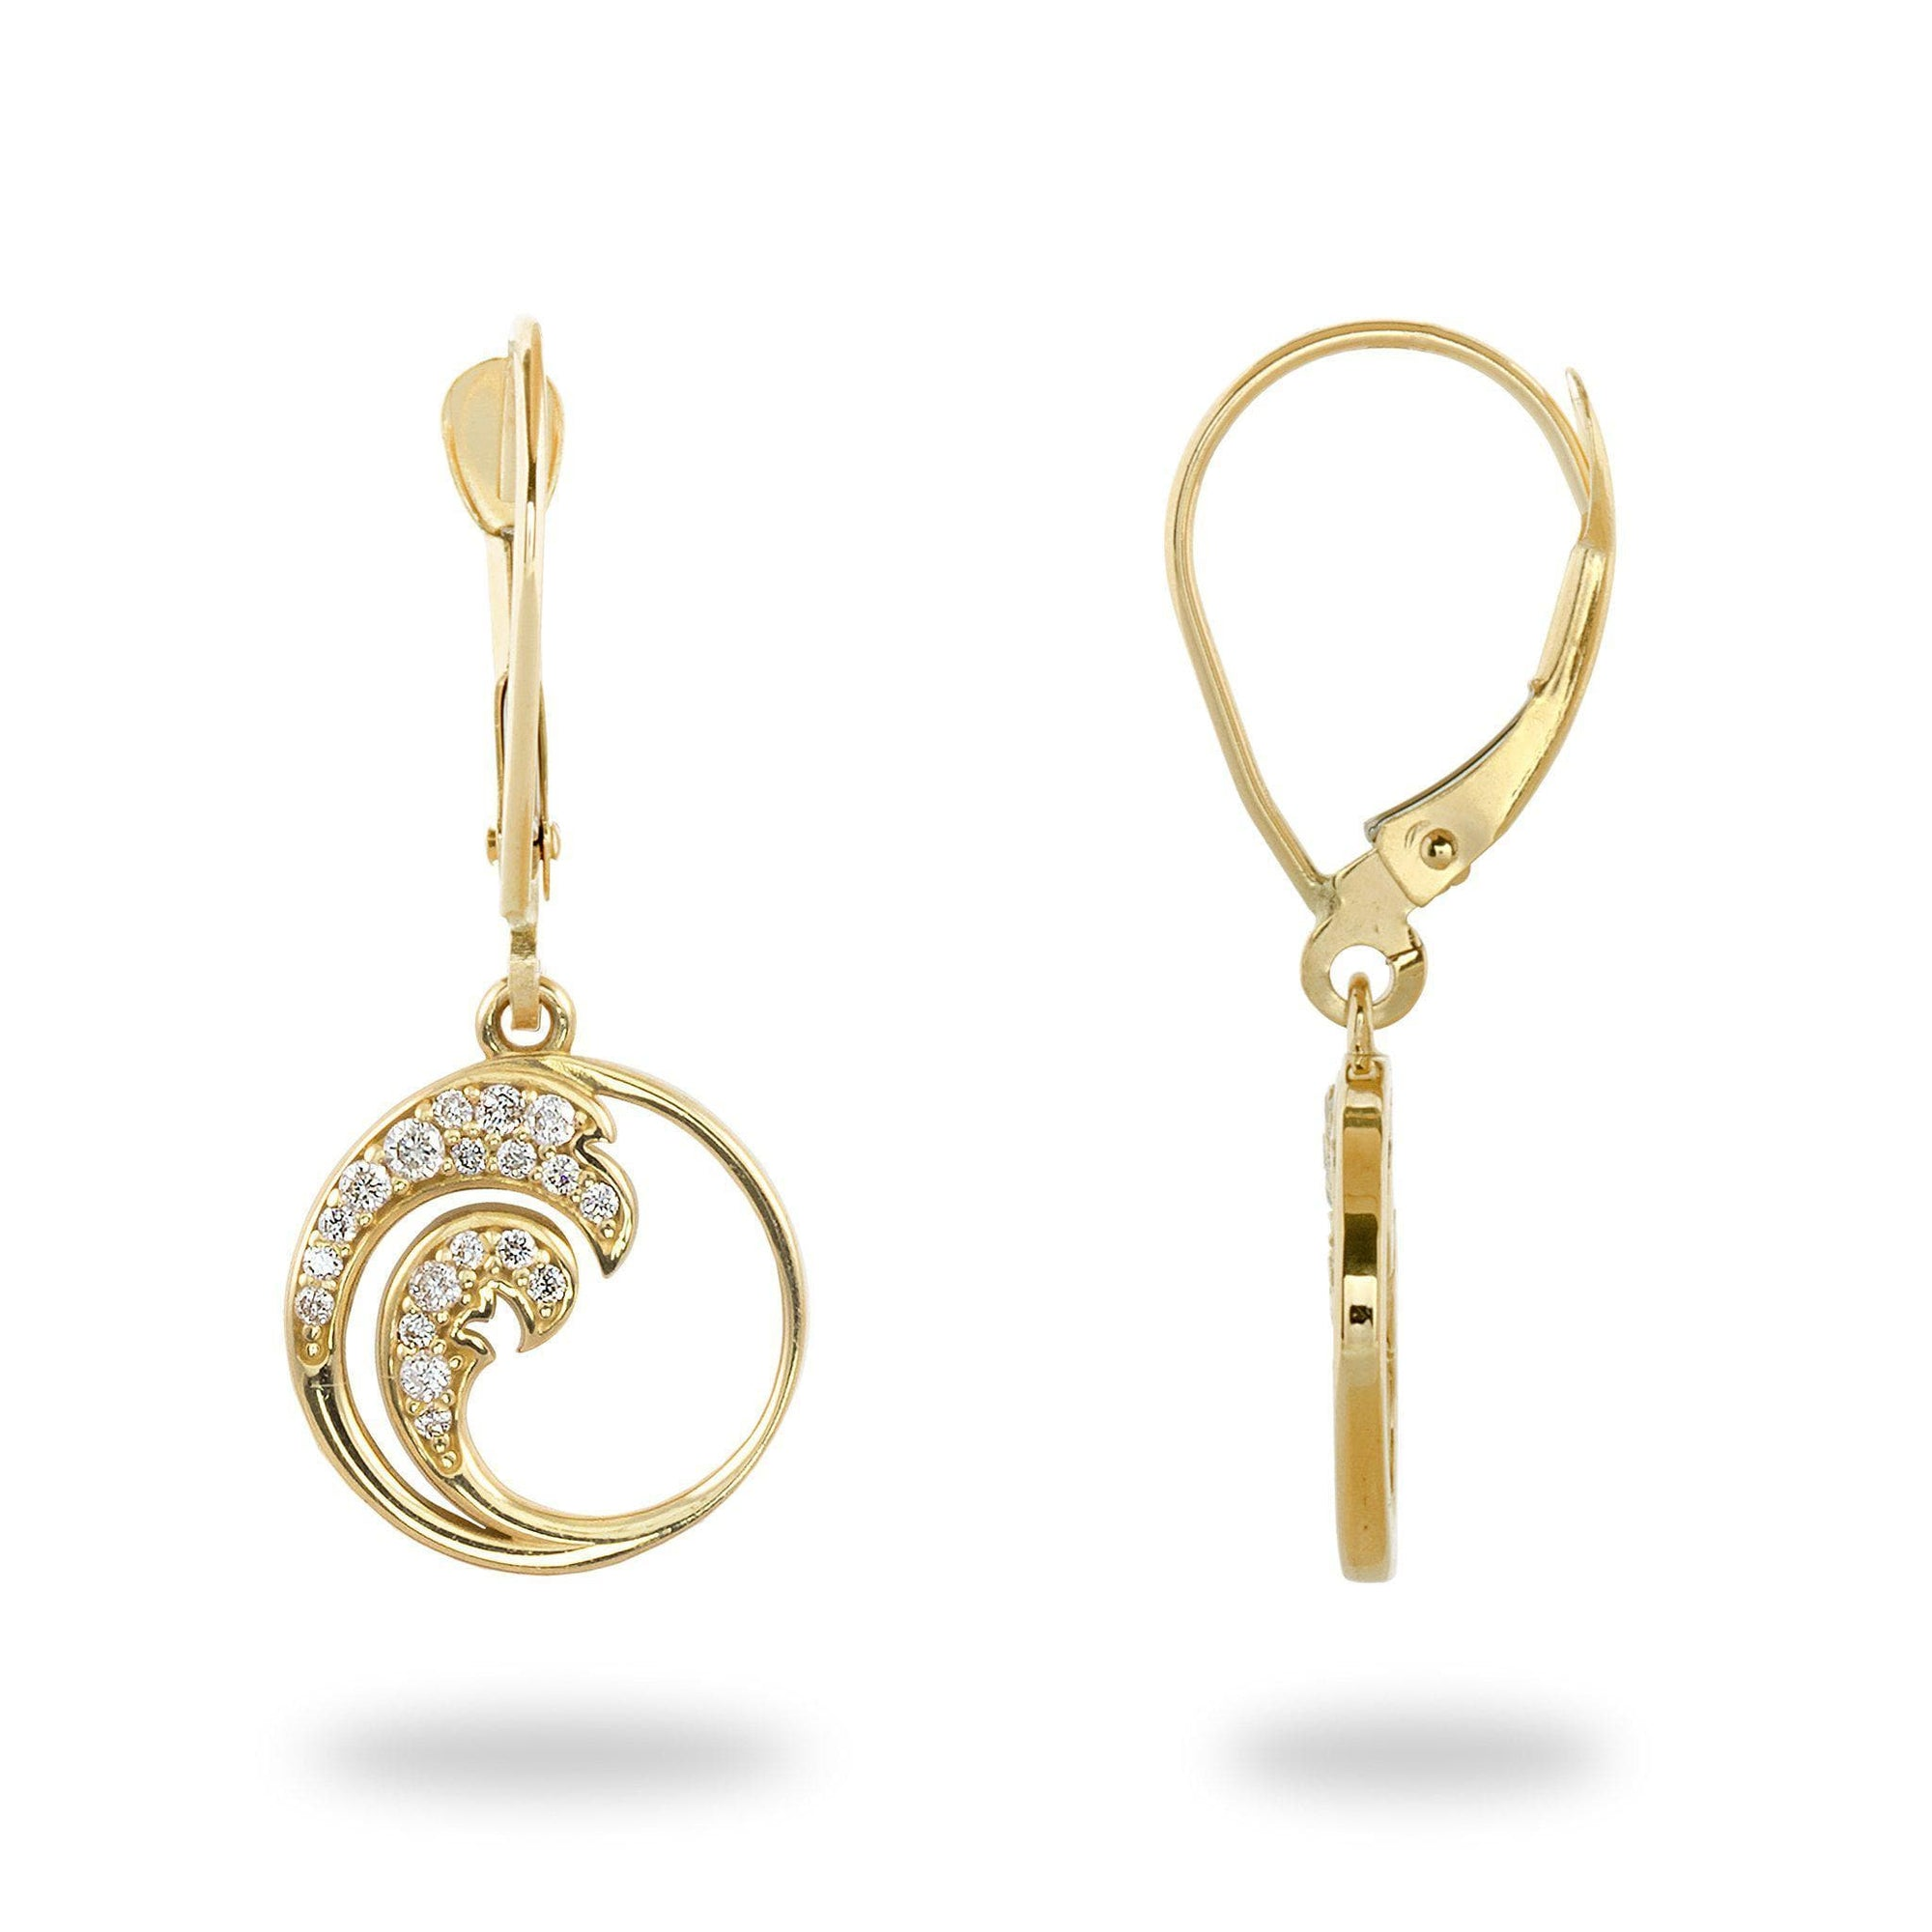 Nalu Earrings in Gold with Diamonds - 12mm-[SKU]